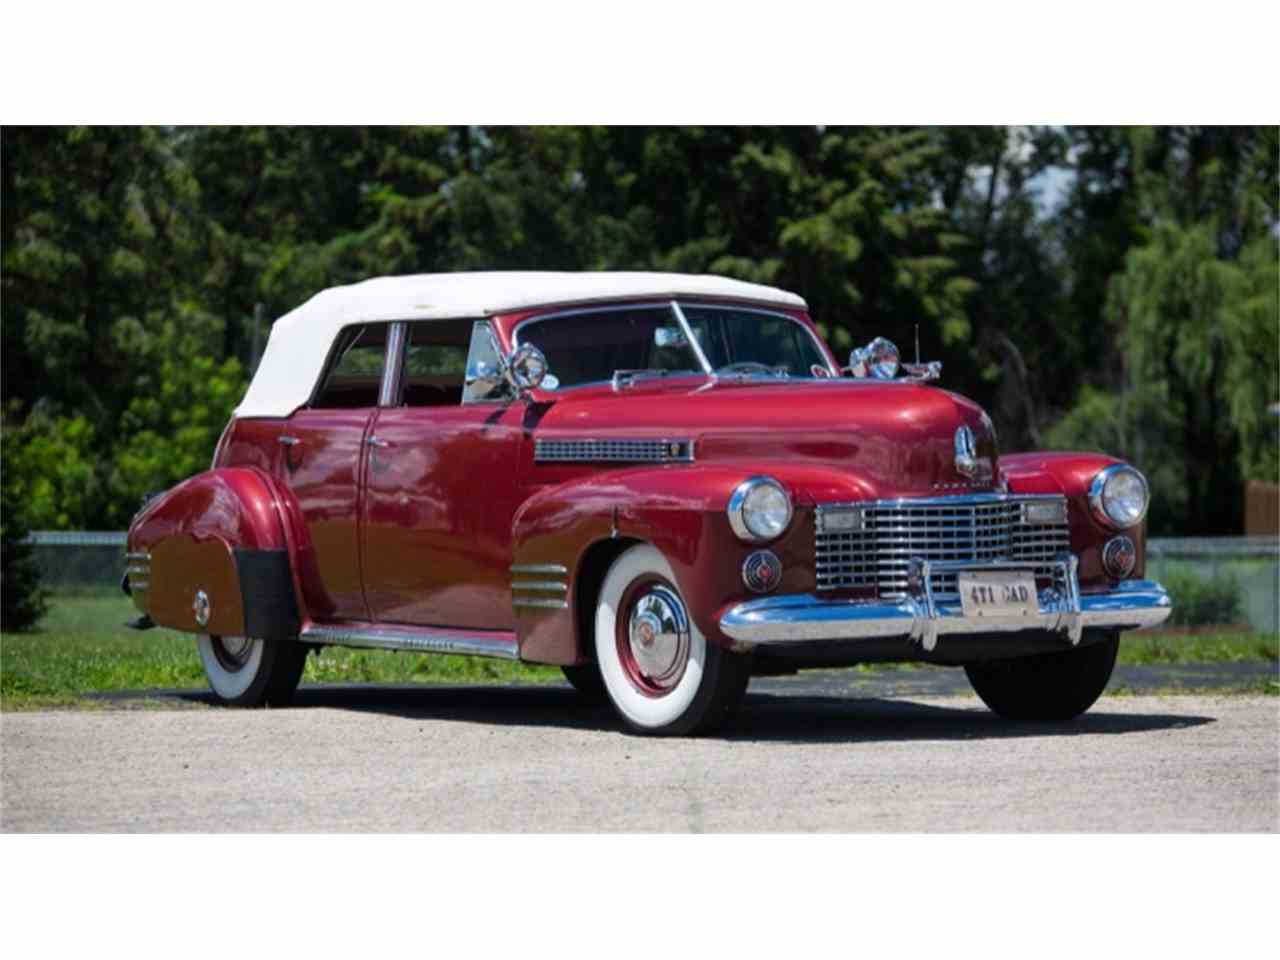 Large Picture of '41 Cadillac Series 62 Offered by a Private Seller - M8MG